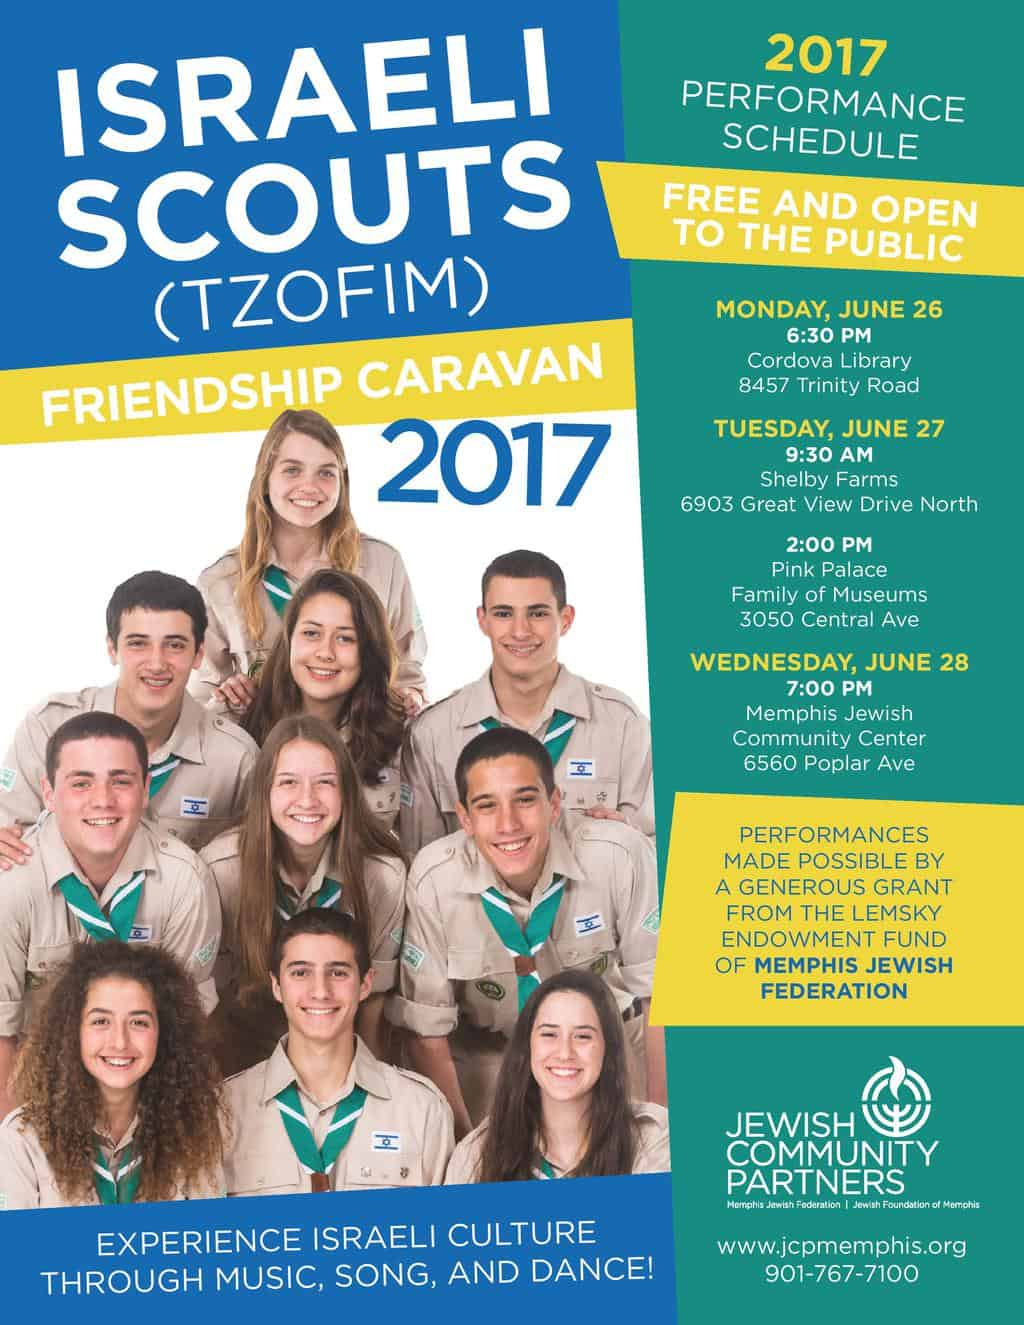 meet-the-israeli-scout-counselors-merav-and-tom